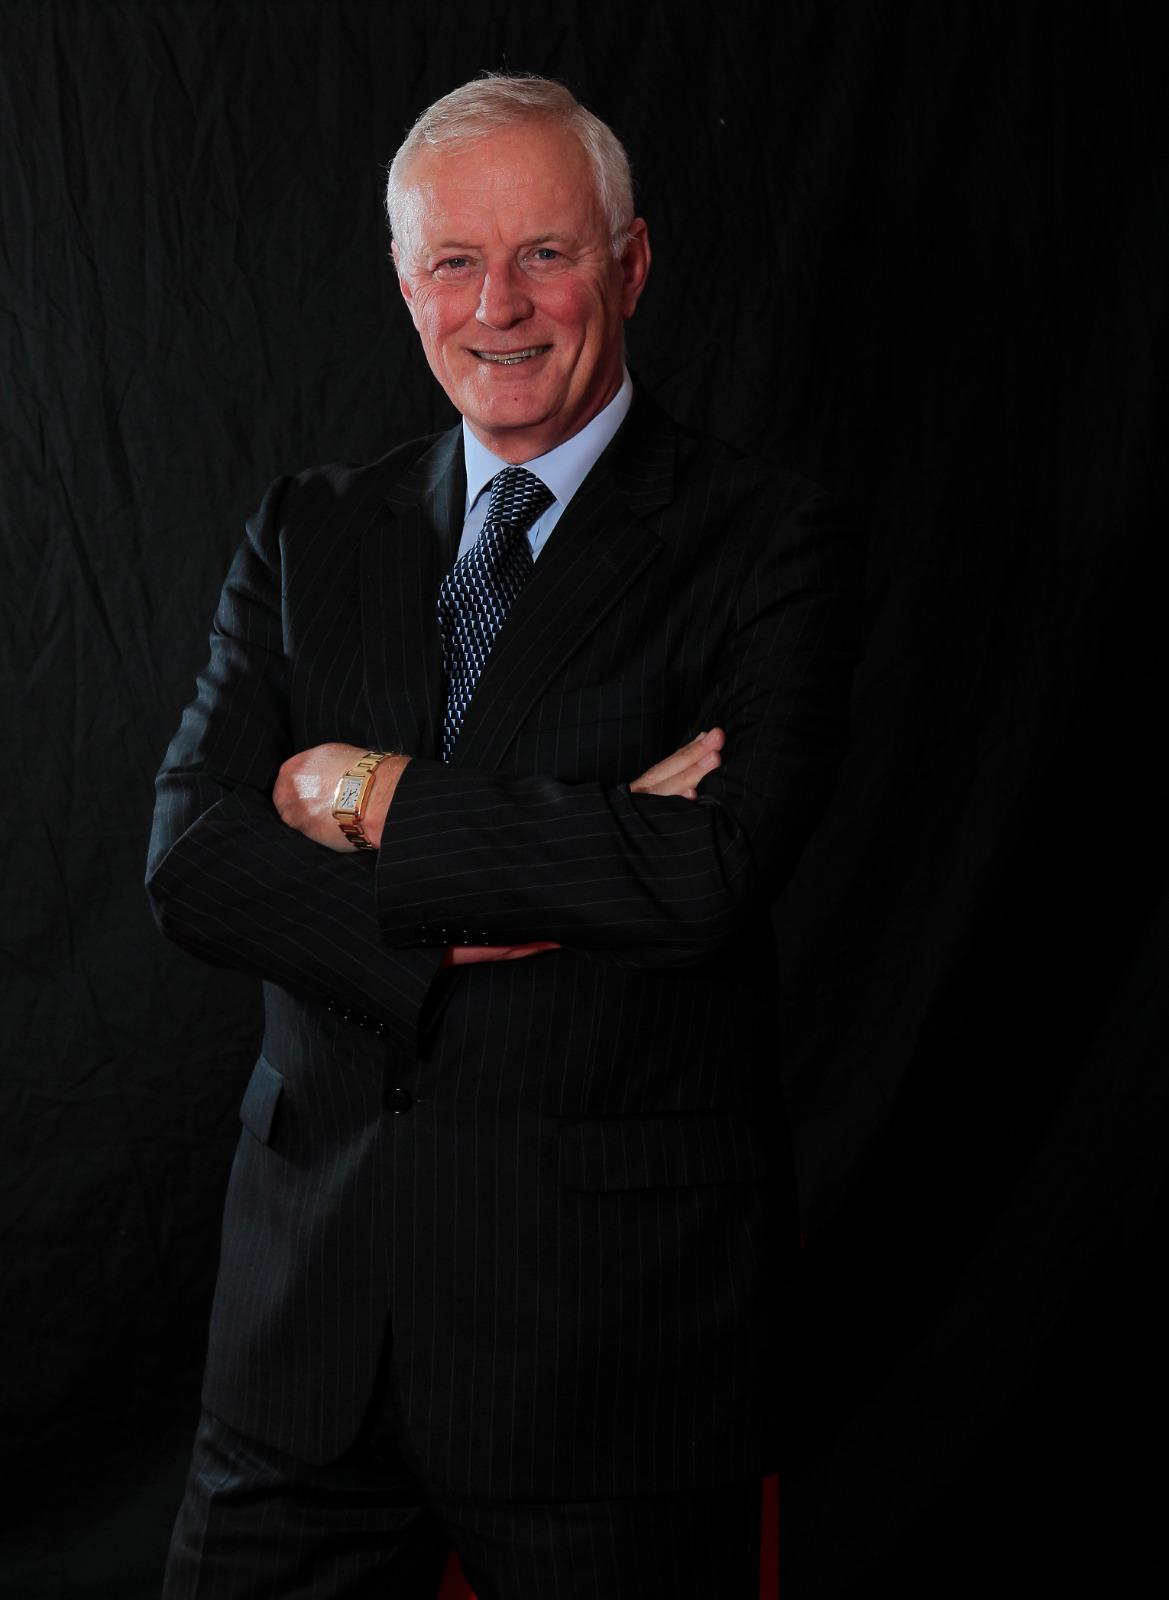 The 60 Minute Show. Featuring Barry Hearn - Snooker, Darts, Boxing Entrepreneur.